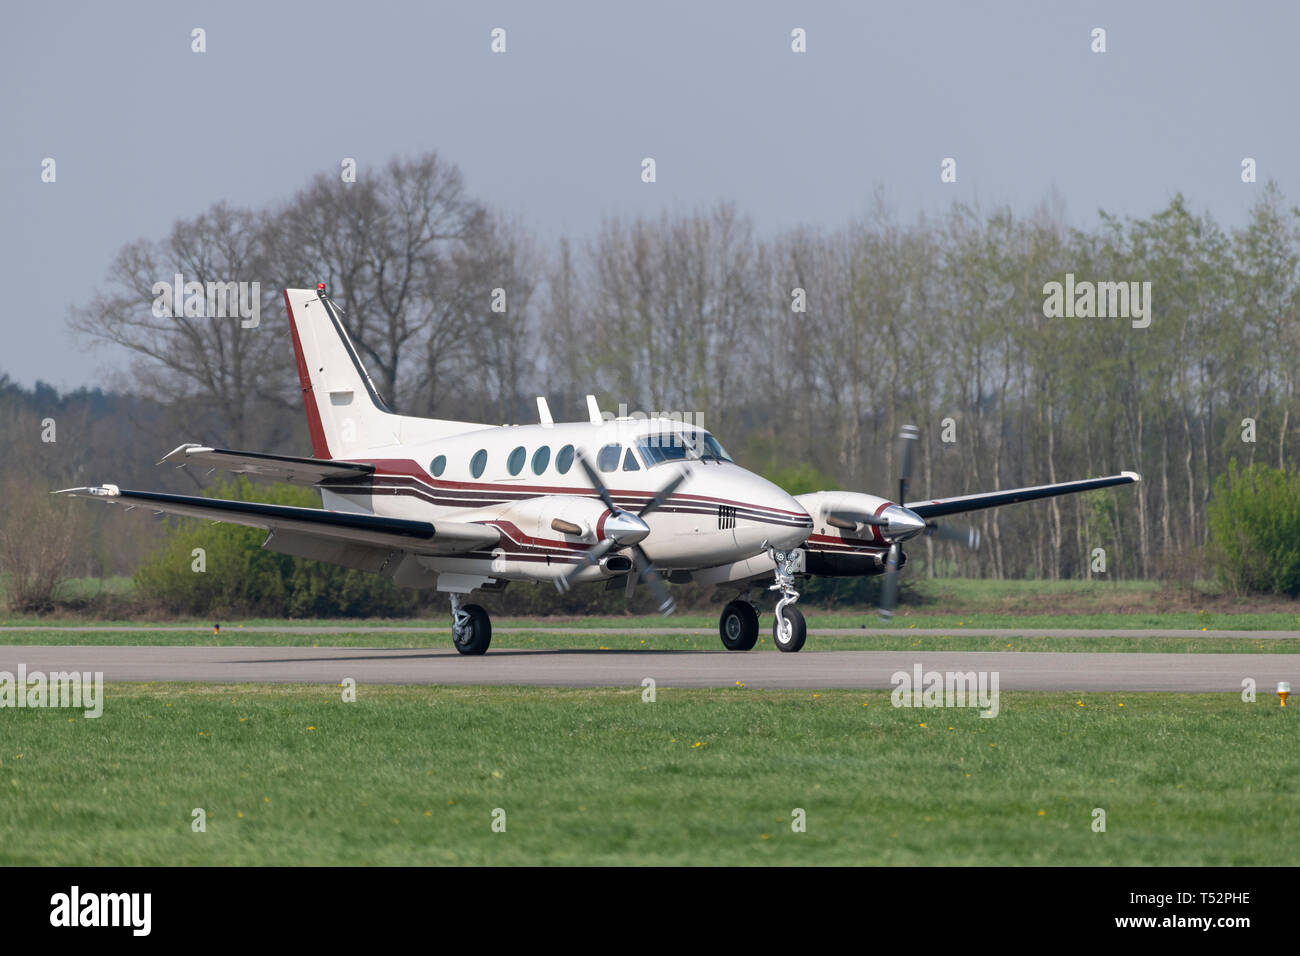 Twin-engined propeller business plane during landing at a small airport - Stock Image